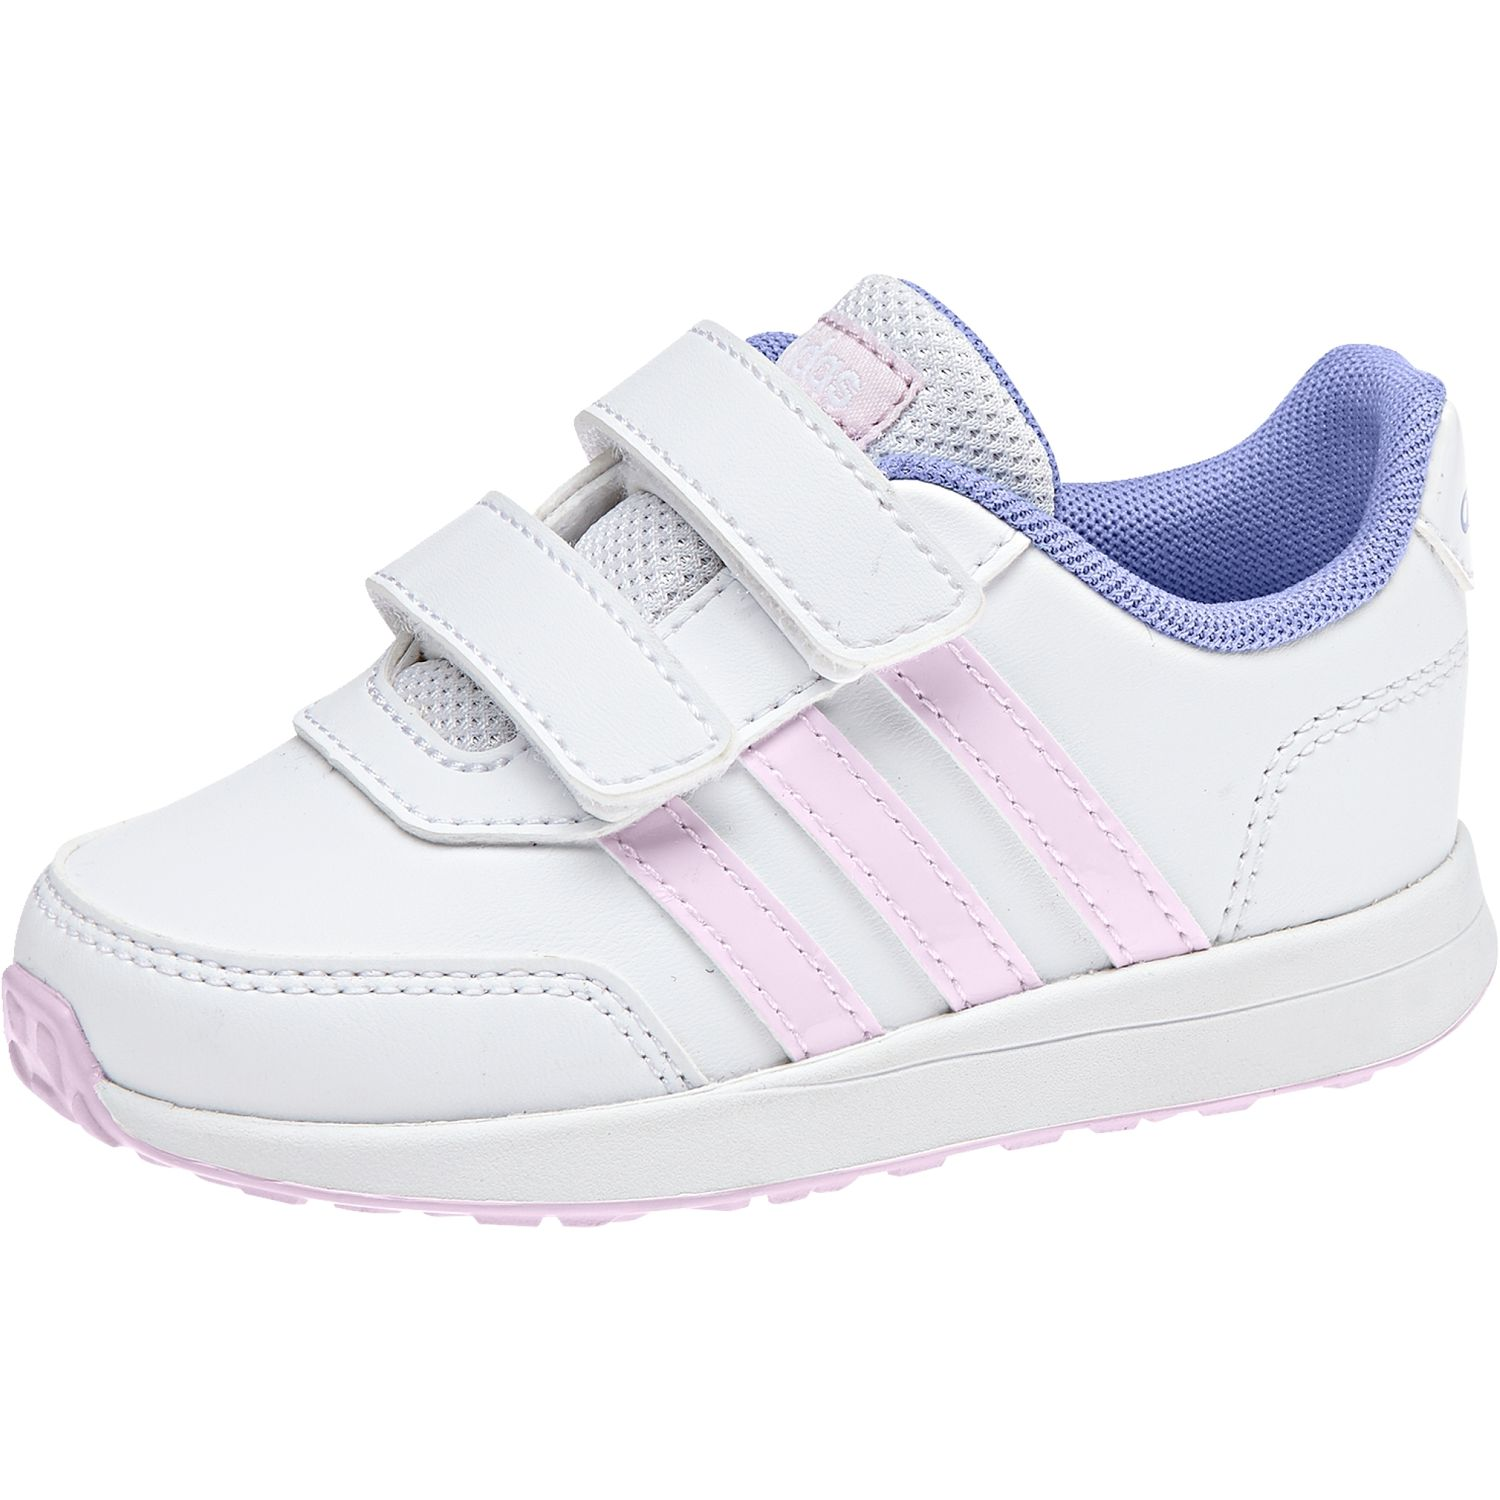 the best attitude 72f3f 80ec7 adidas performance VS SWITCH 2.0 CMF INF kids running shoes DB1926 white  pink